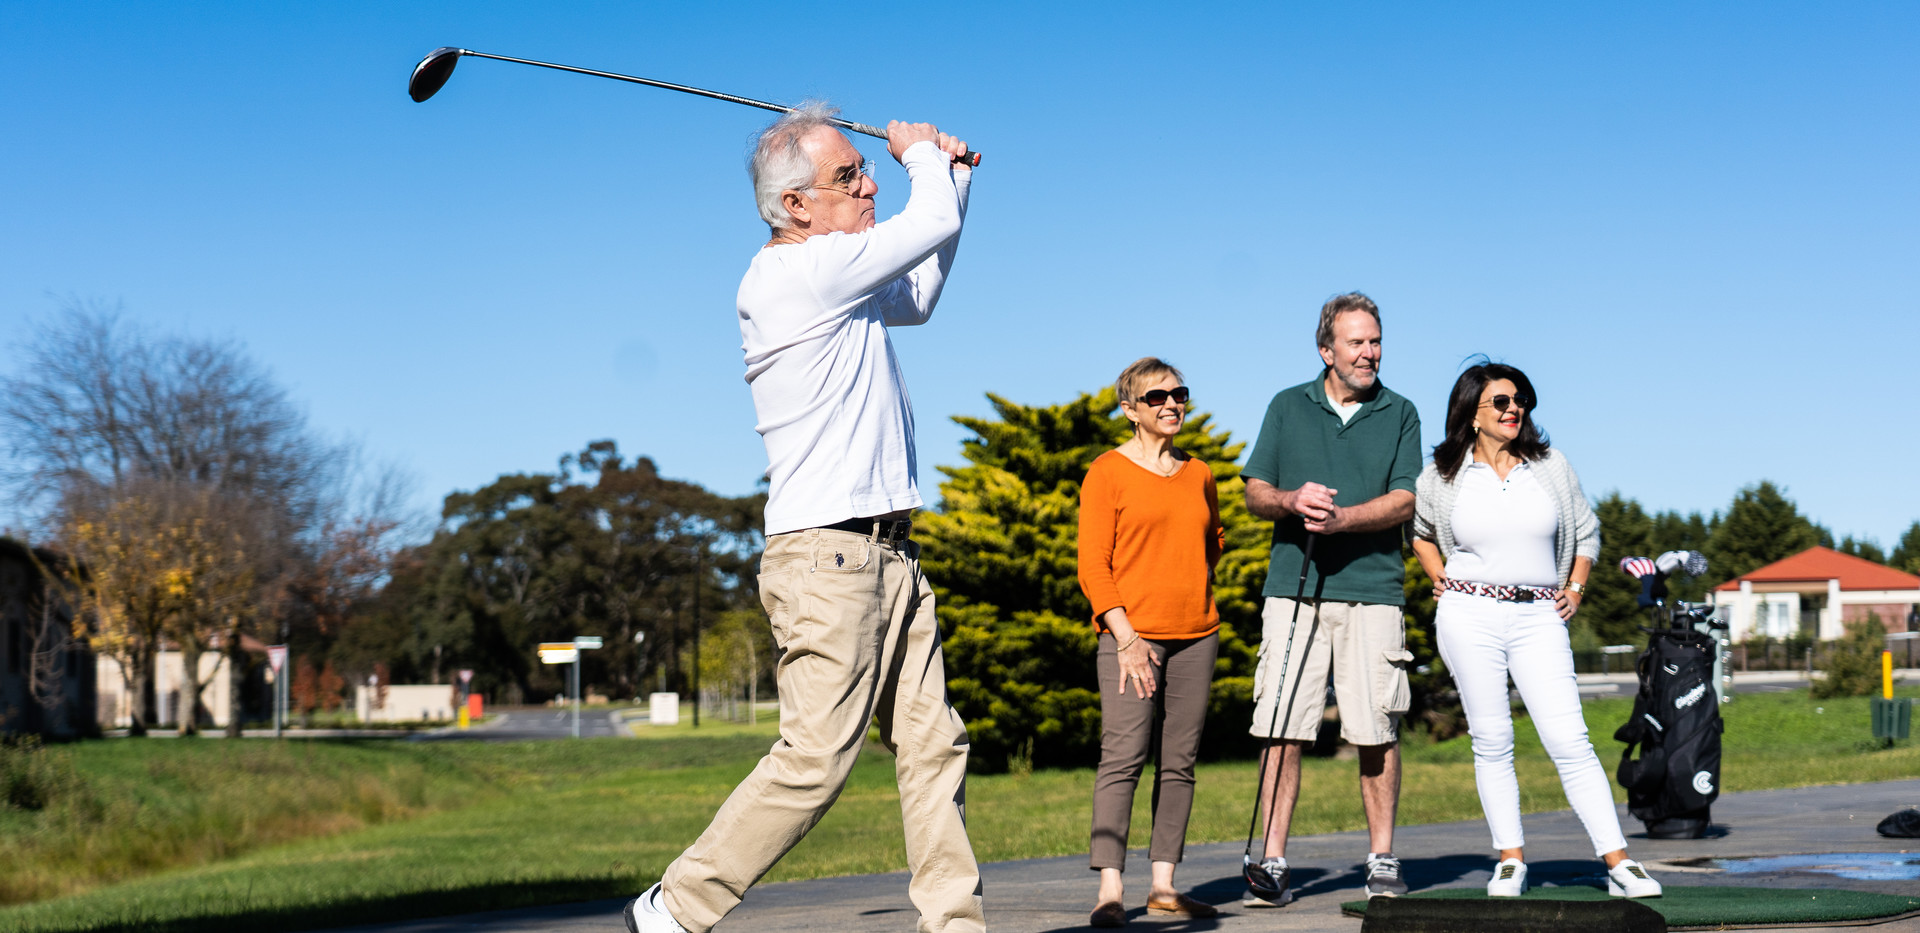 Residents from La Dimora retirement community  practicing their golf on the driving range